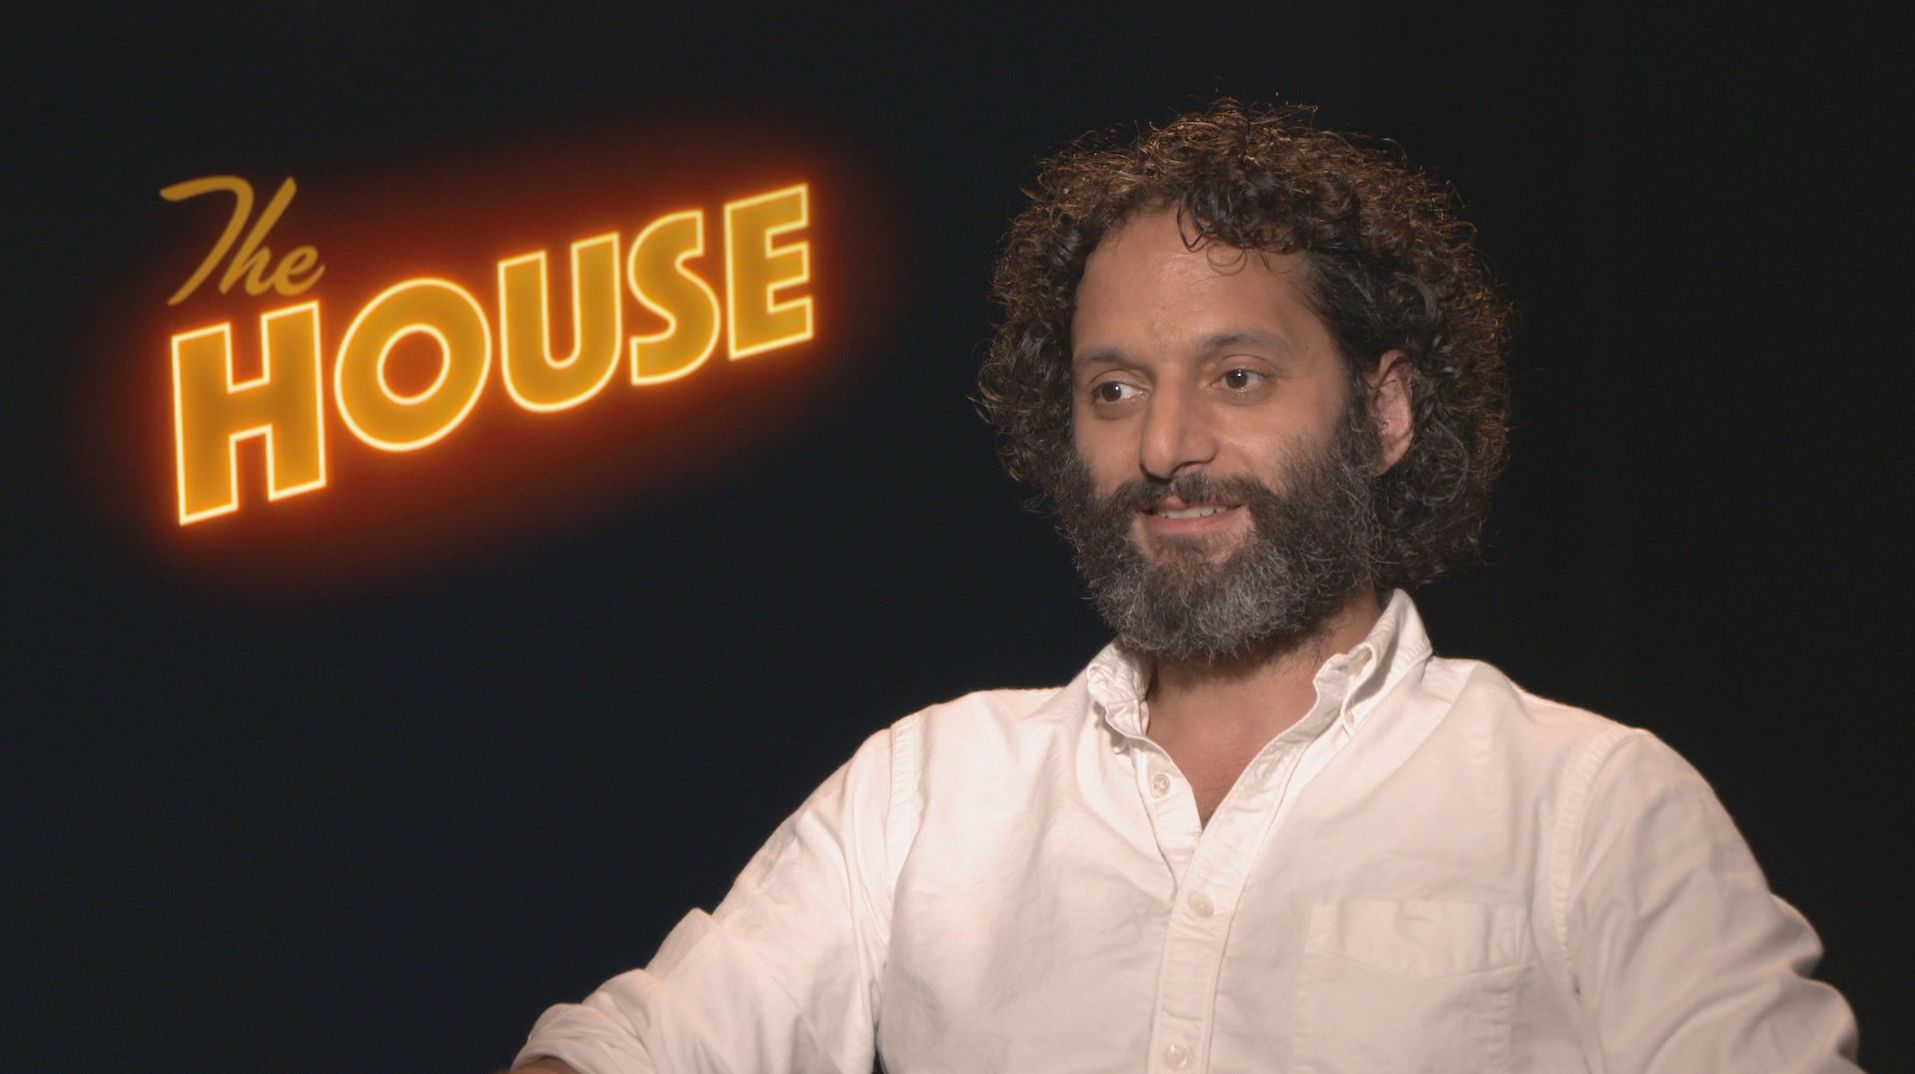 jason mantzoukas on the house and playing the crazy guy